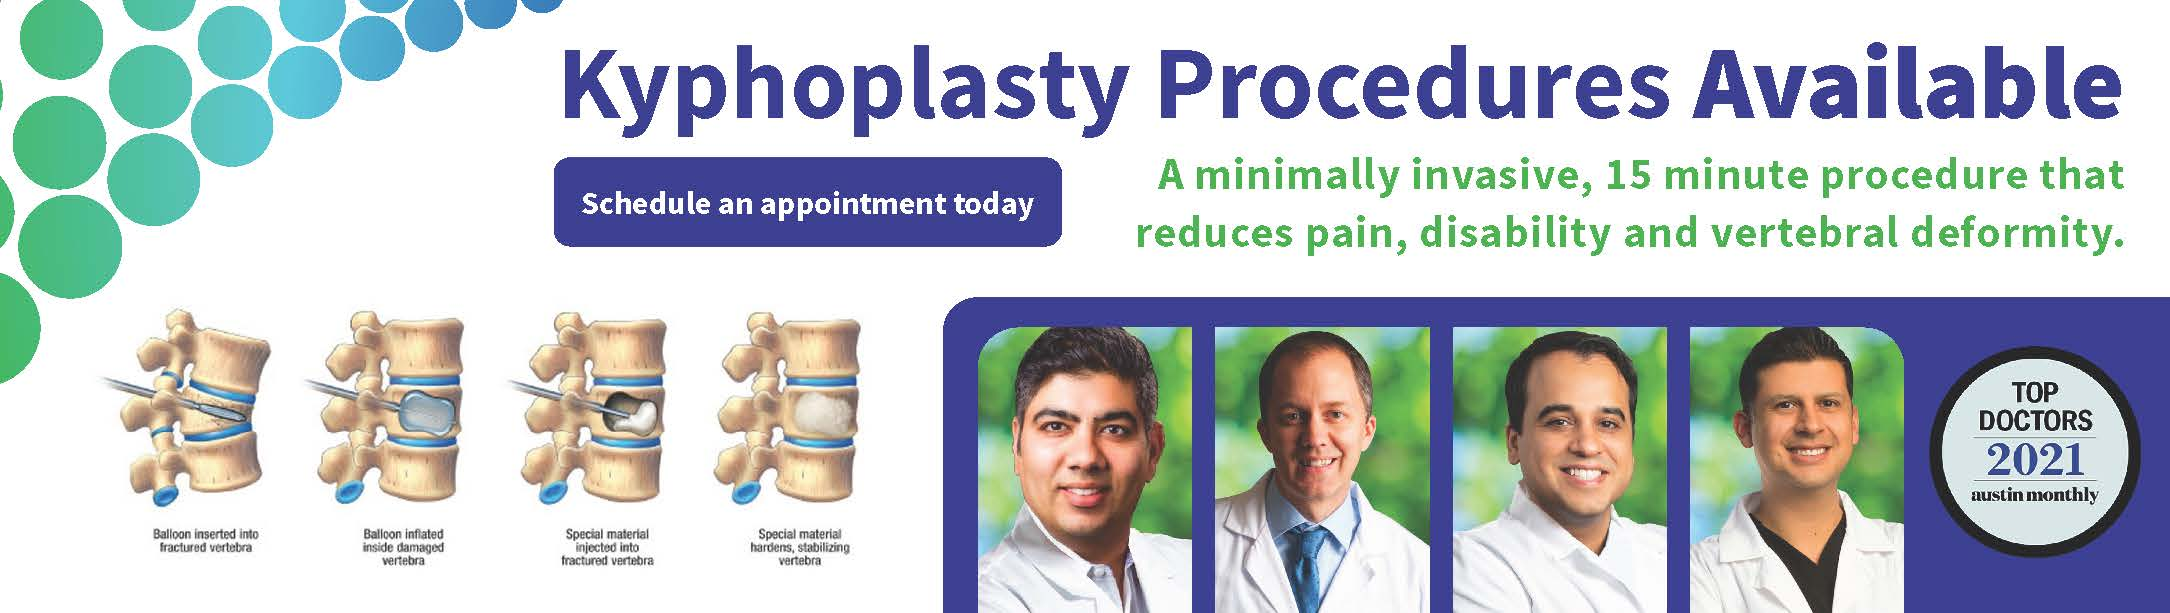 Kyphoplasty procedures available at a pain clinic near you